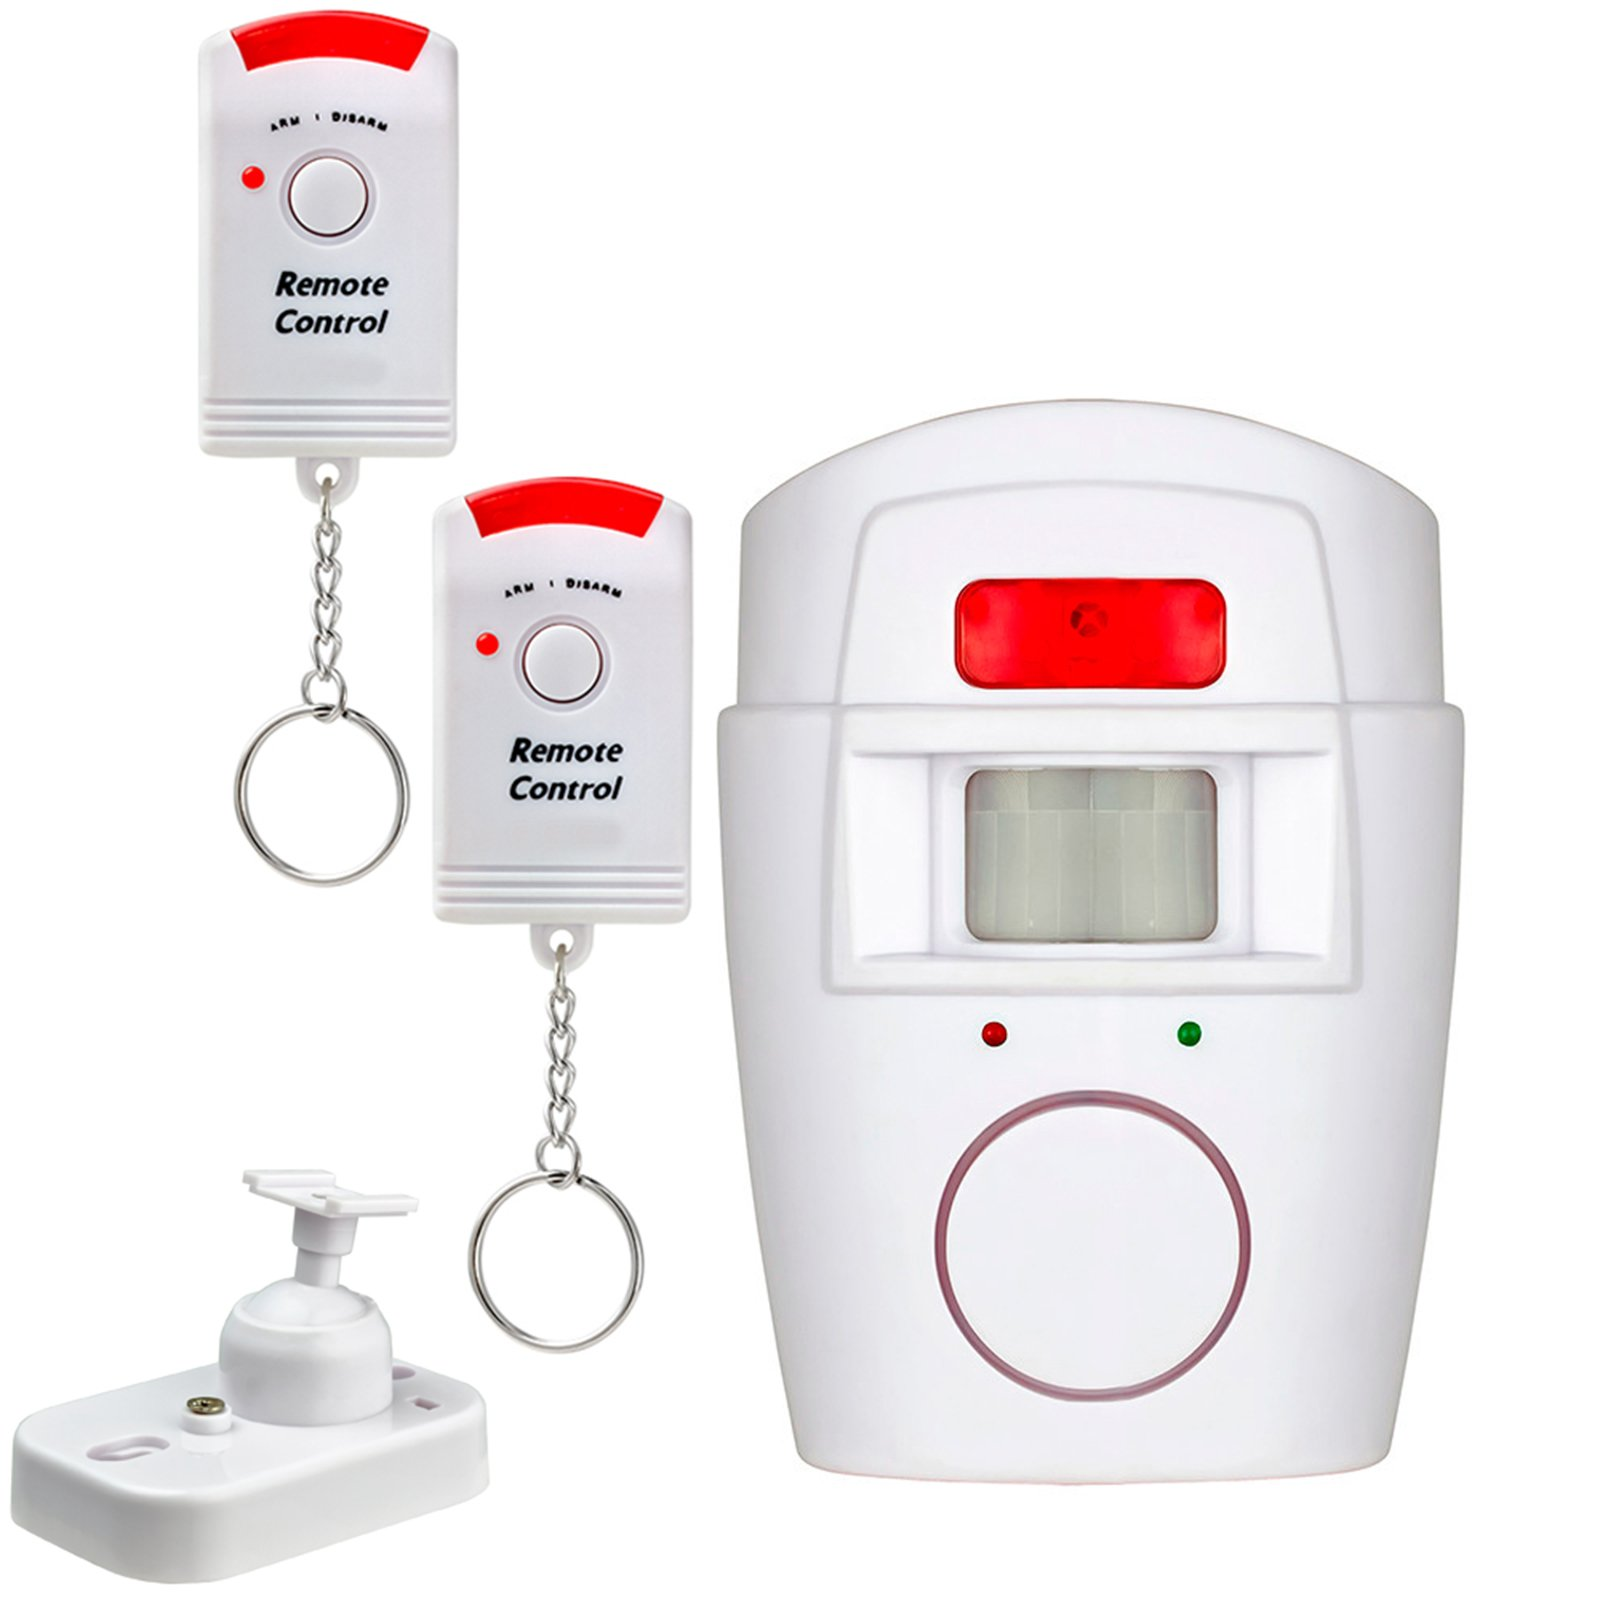 Mbangde Wireless Home Security Driveway MP Alert PIR Motion Sensor Detector Alarm System Kit with 2 Remote Controls 105dB